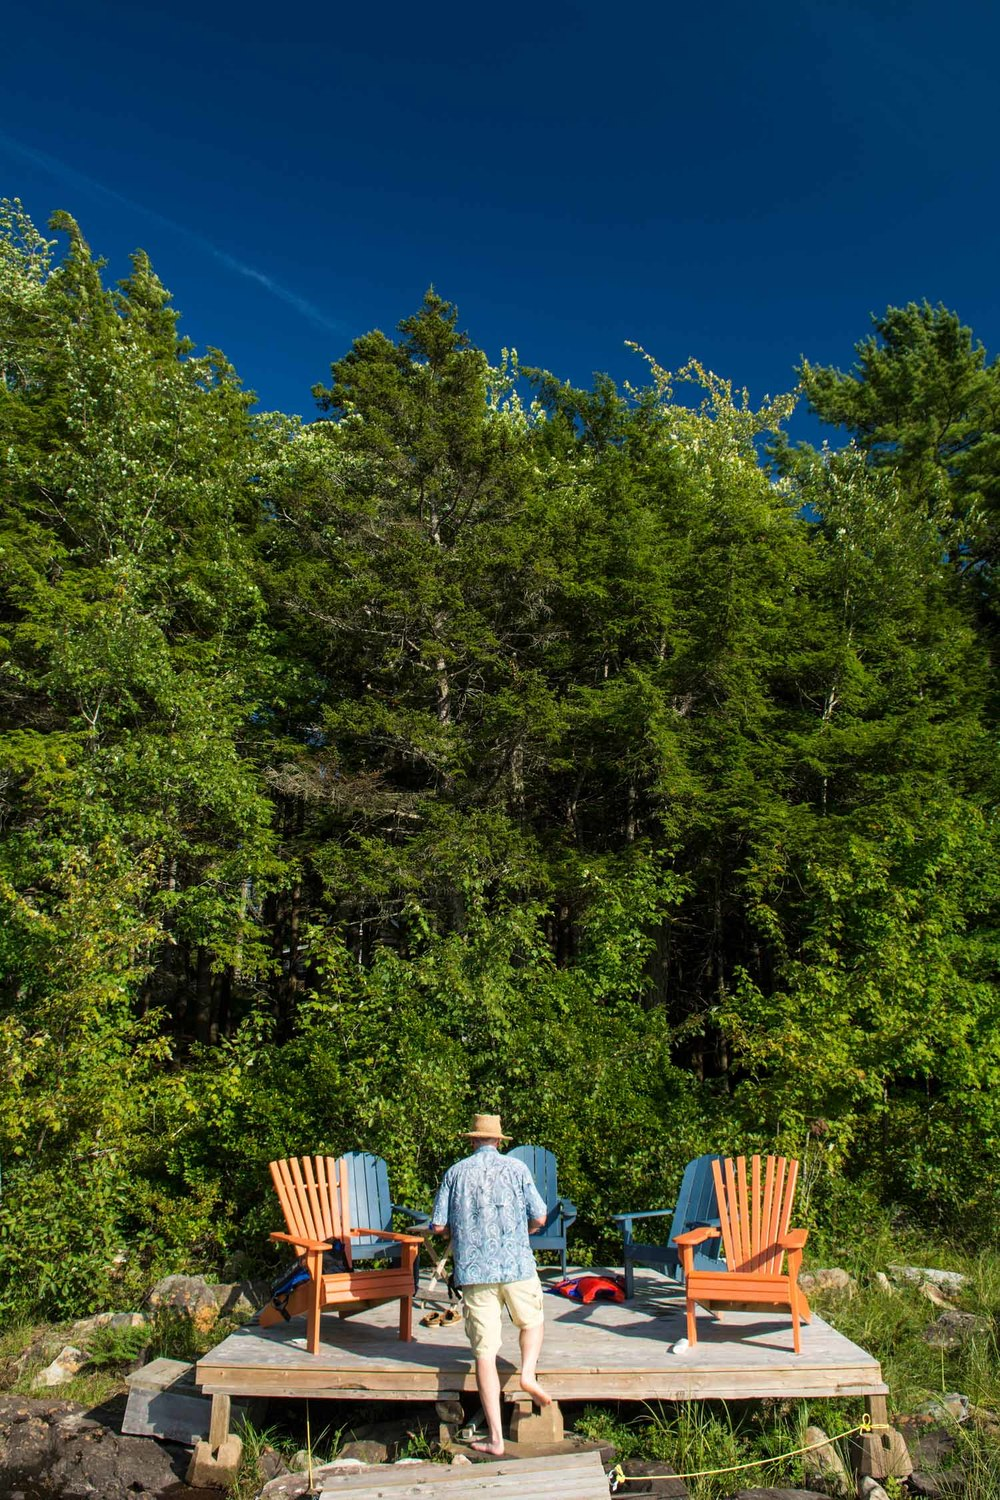 sept07 2013-Cottage Life-Smulders family-Moelga Lake NS-photo by Aaron McKenzie Fraser-www.amfraser.com-4943.jpg